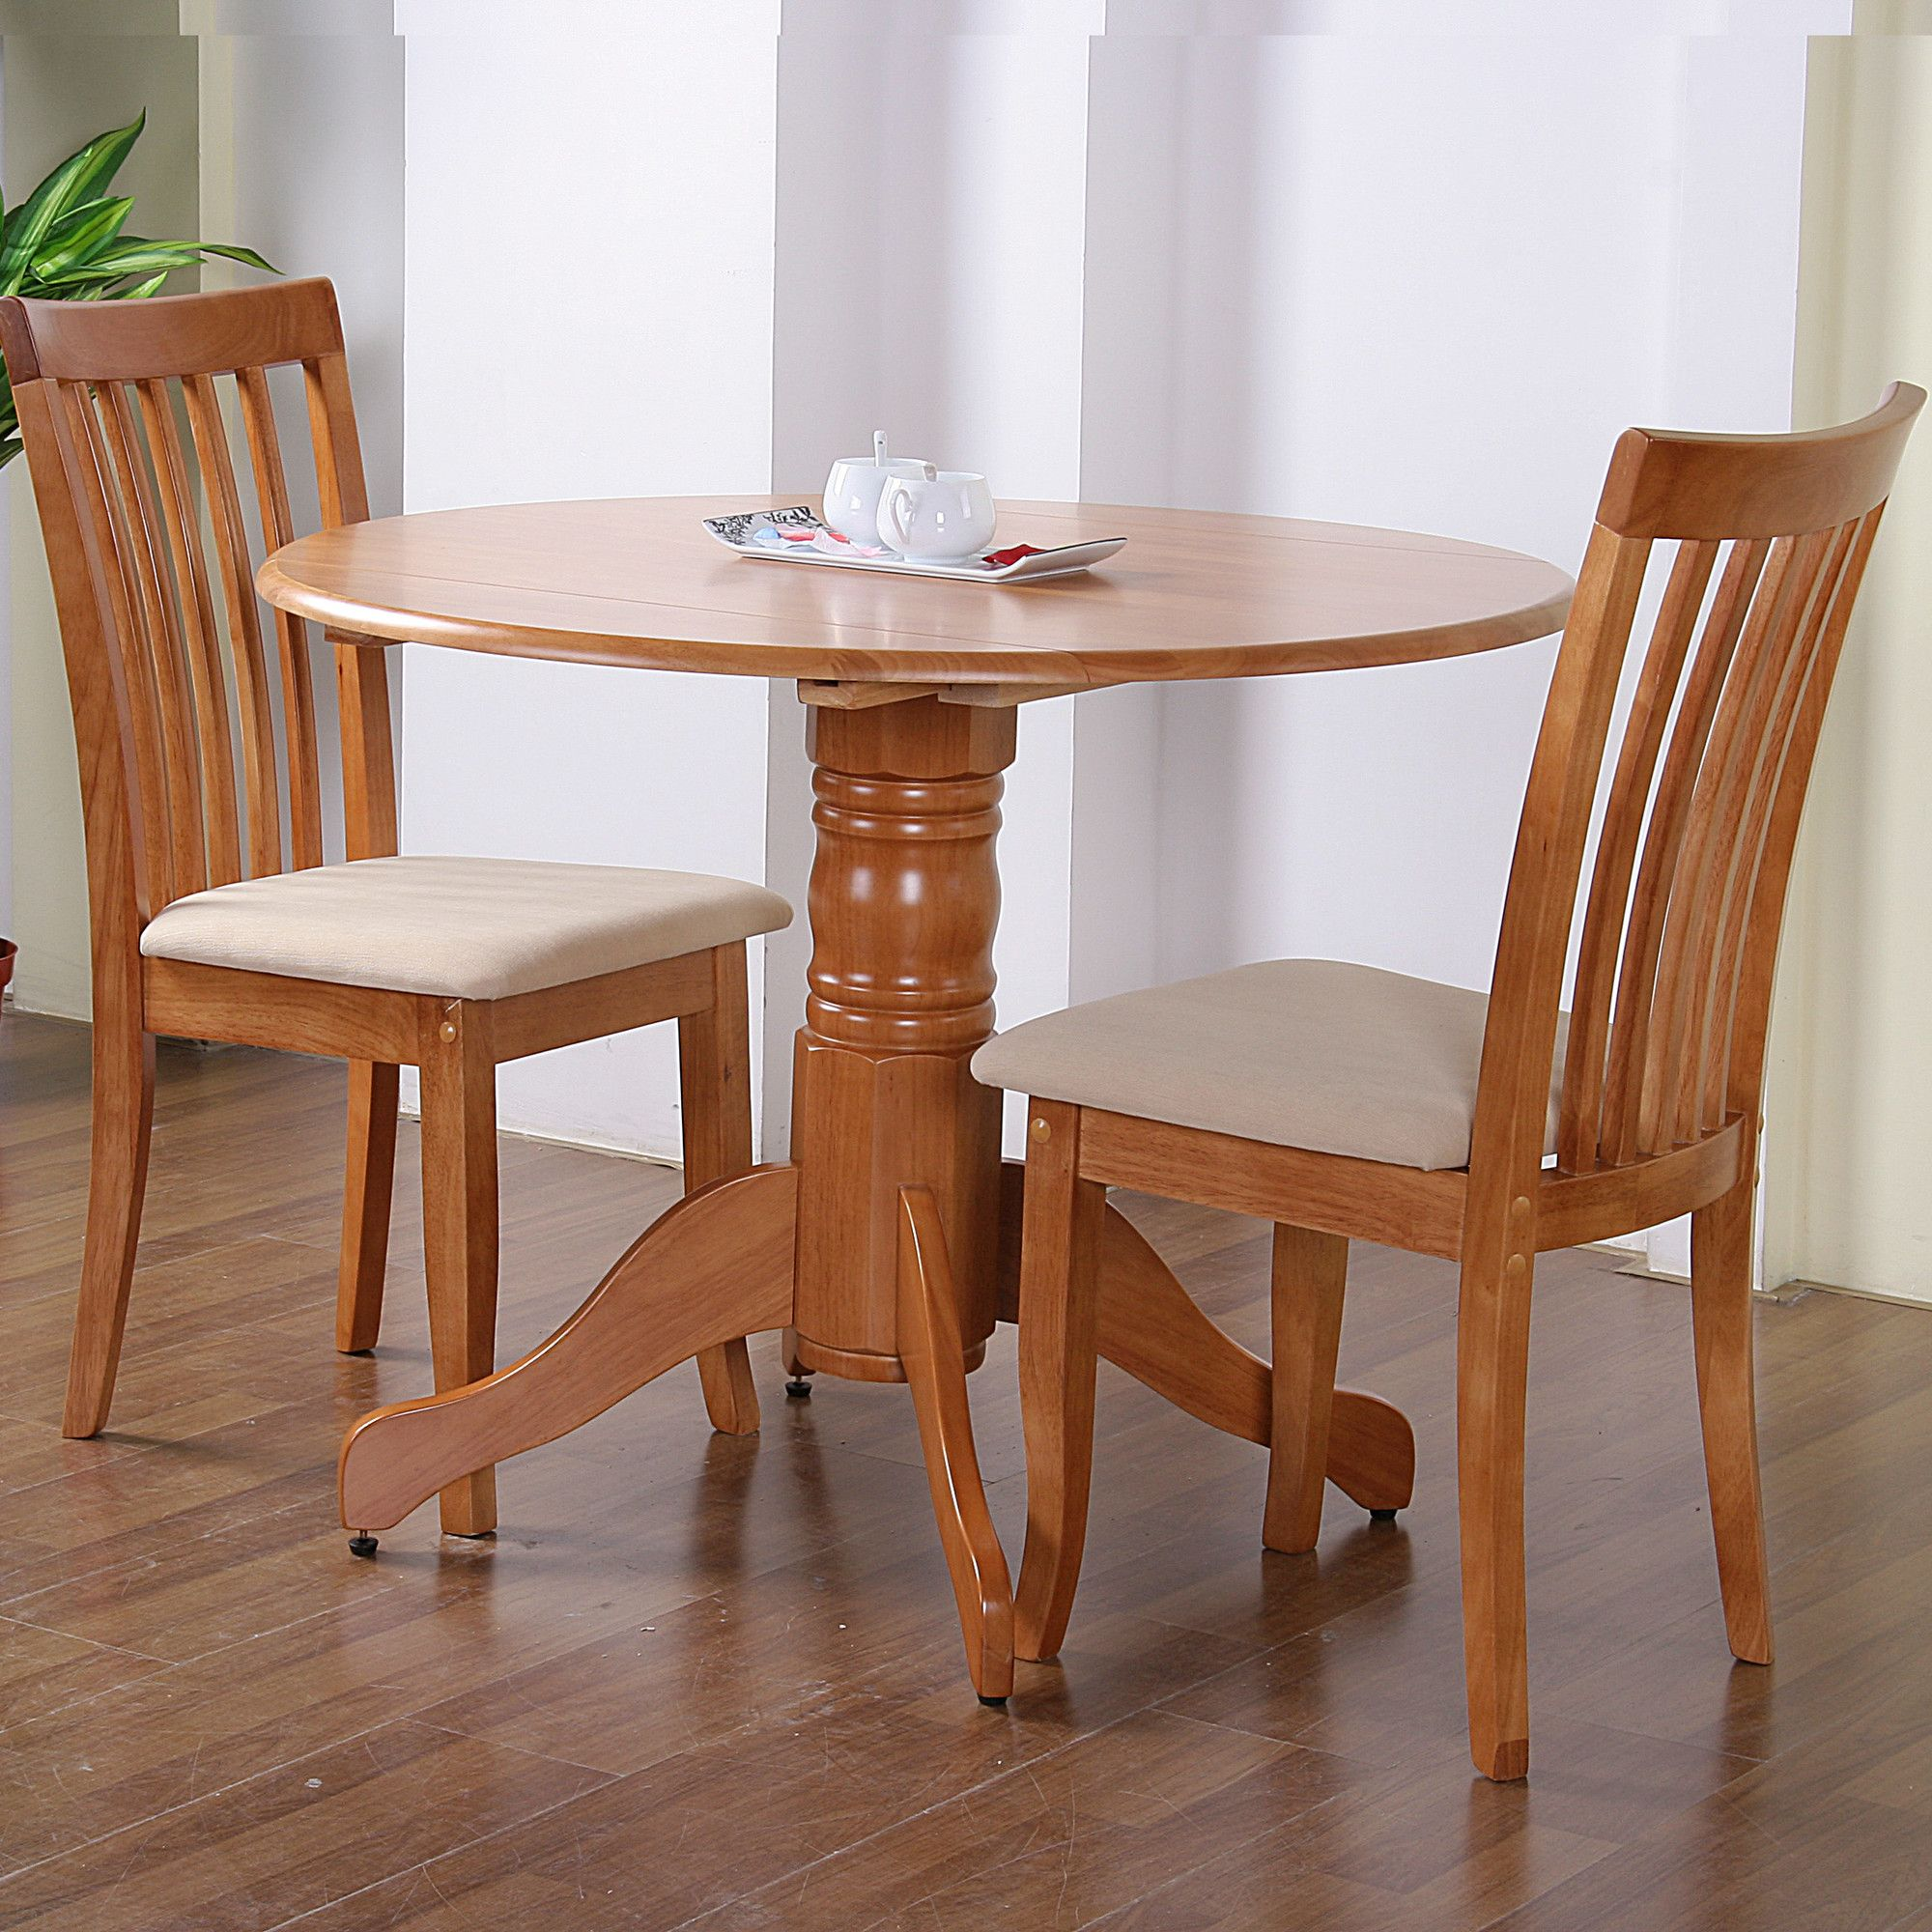 G&P Furniture Windsor House 3-Piece Bristol Round Drop Leaf Dining Set with Slatted Back Chair - Maple at Tesco Direct